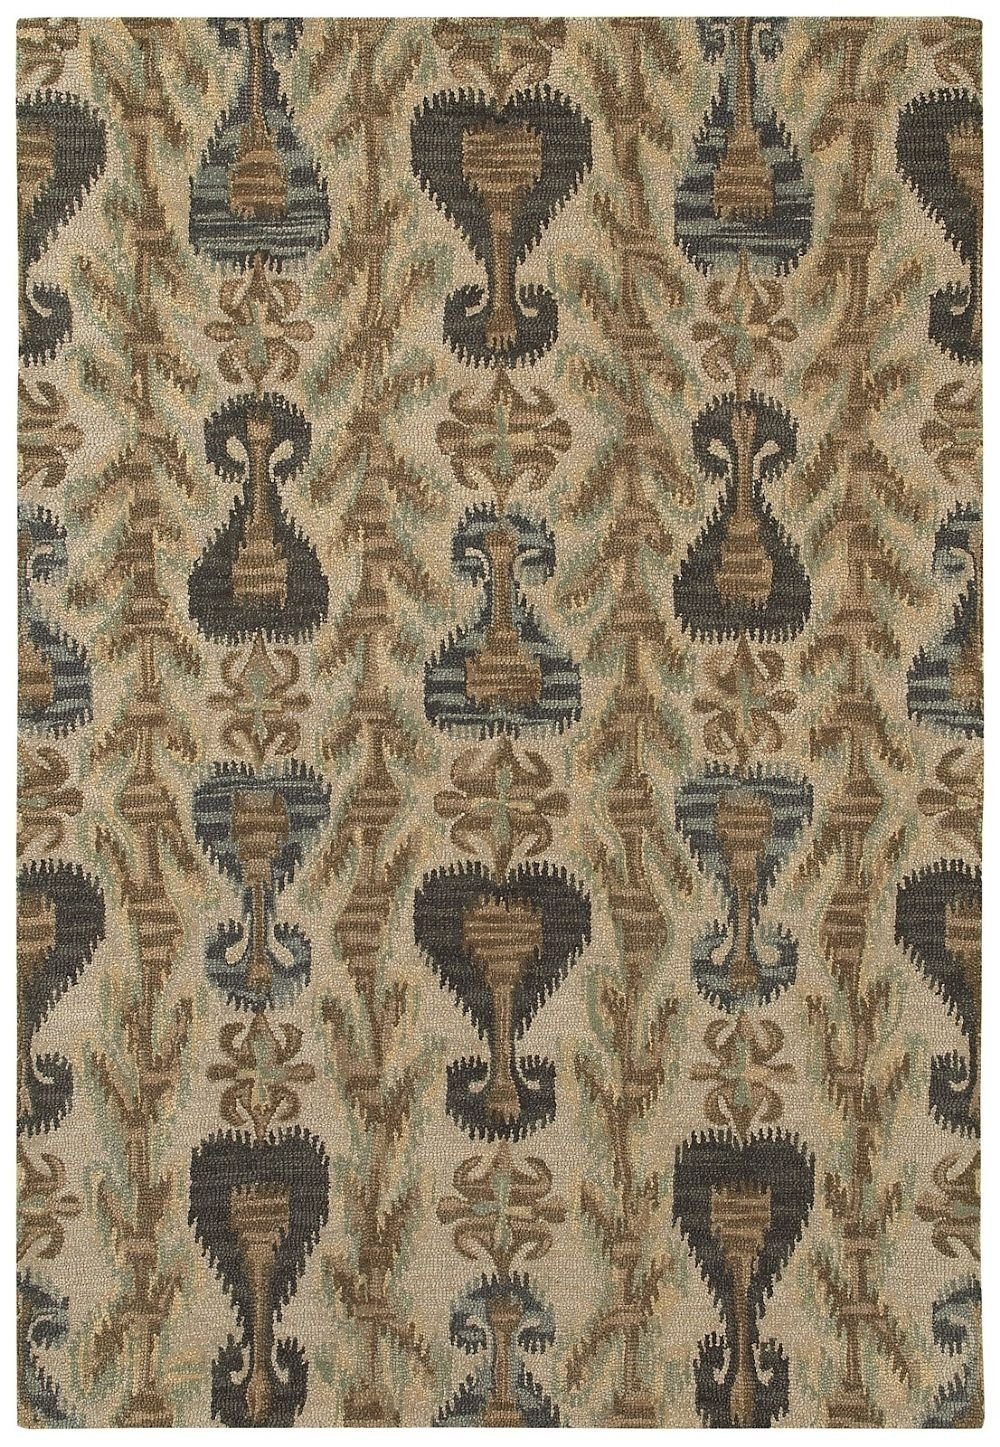 Transitional 8'x10' Rectangle Area Rug in Desert color from Nevada Collection